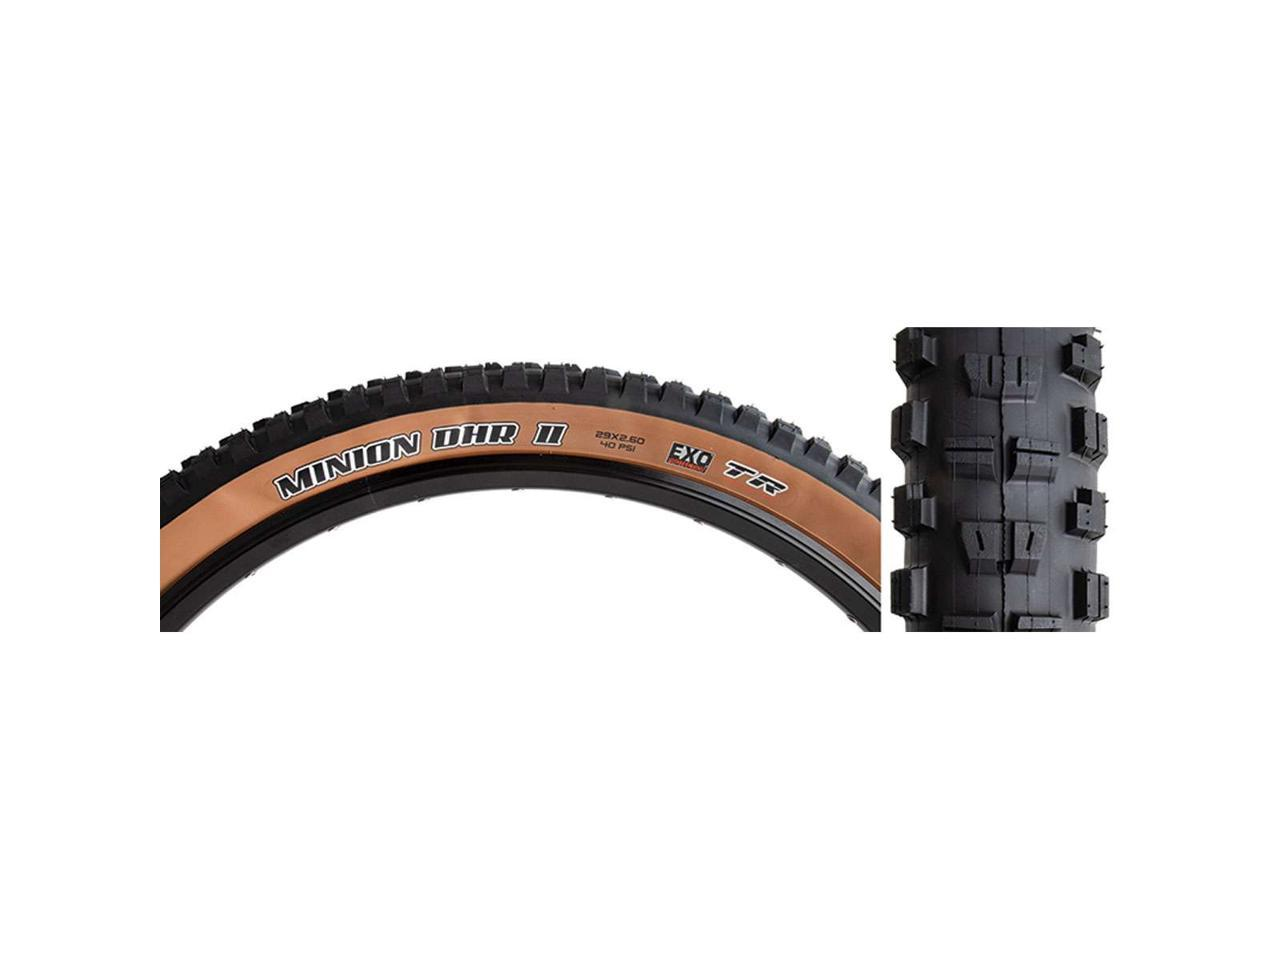 Maxxis Dissector Bicycle Tire 29 X 2.60 FOLDABLE 3C MAXX TERRA, 66-622